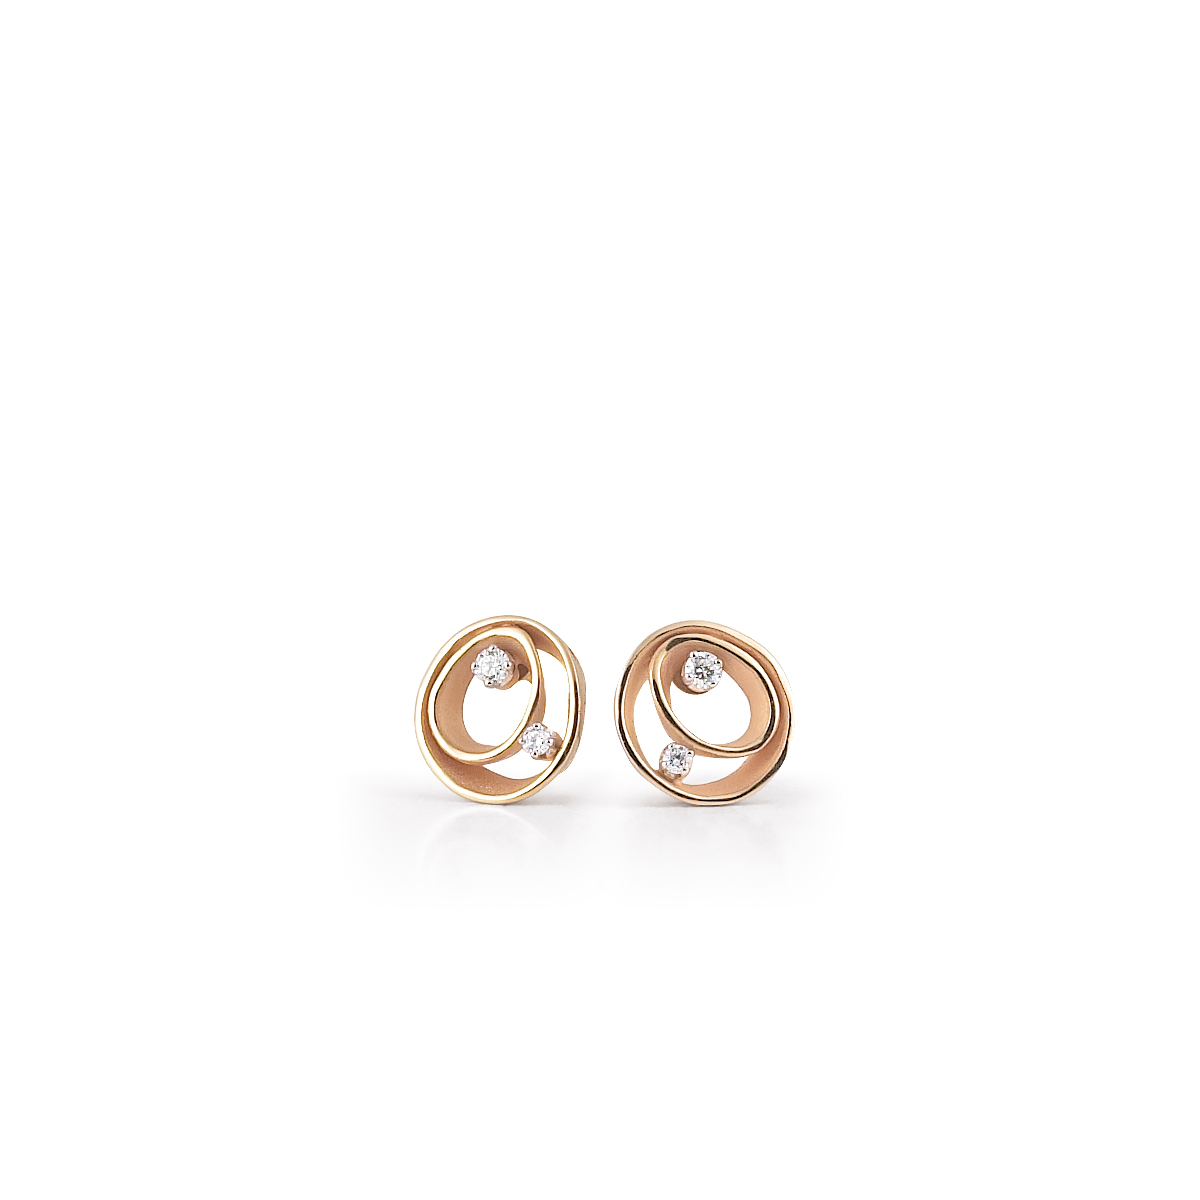 Anna Maria Cammilli 18ct Rose Gold And Diamond Dune Earrings.